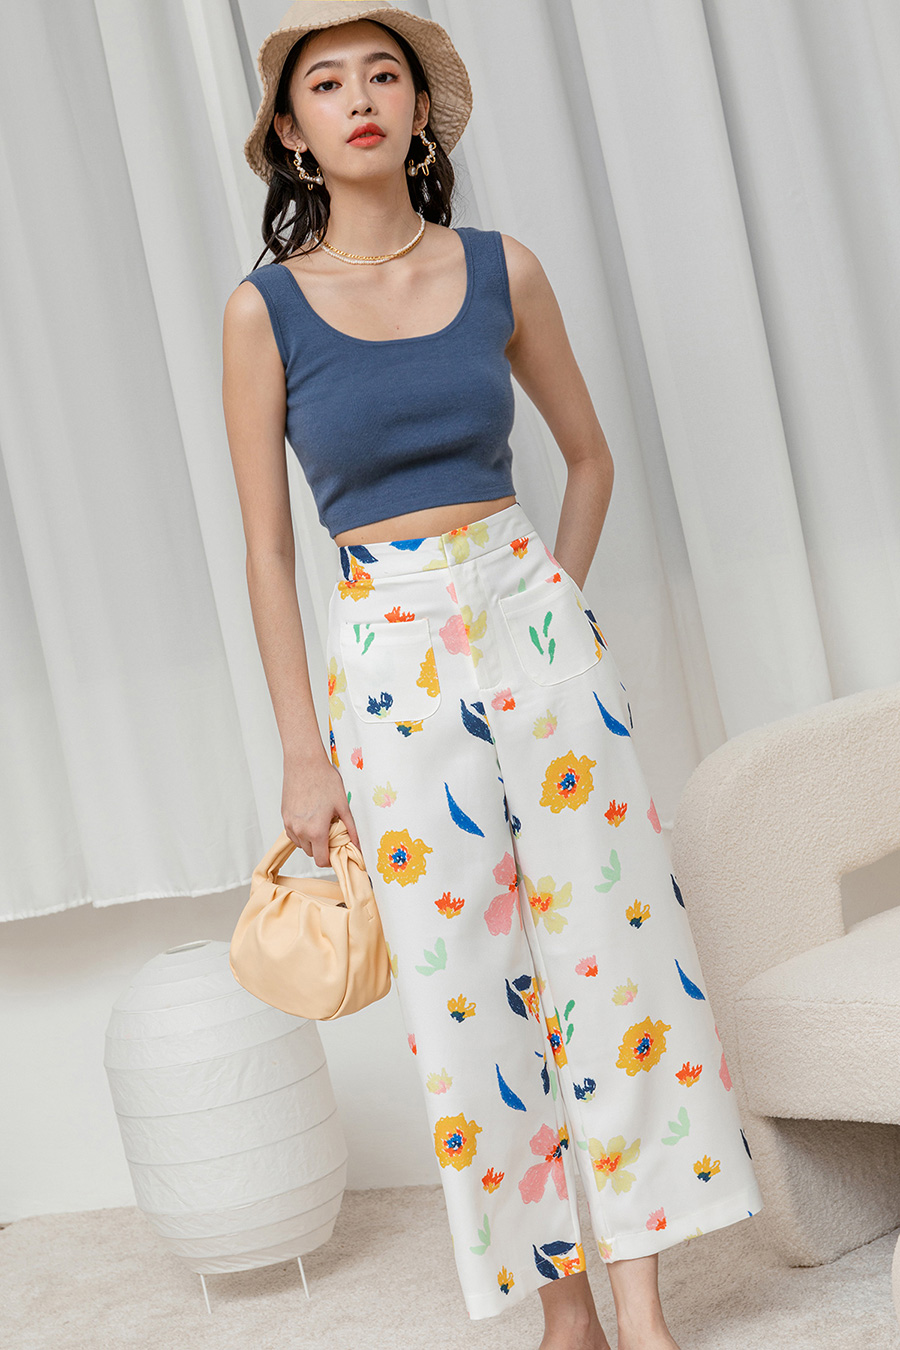 KERRY PANTS - GARDEN NOTES [BY MODPARADE]